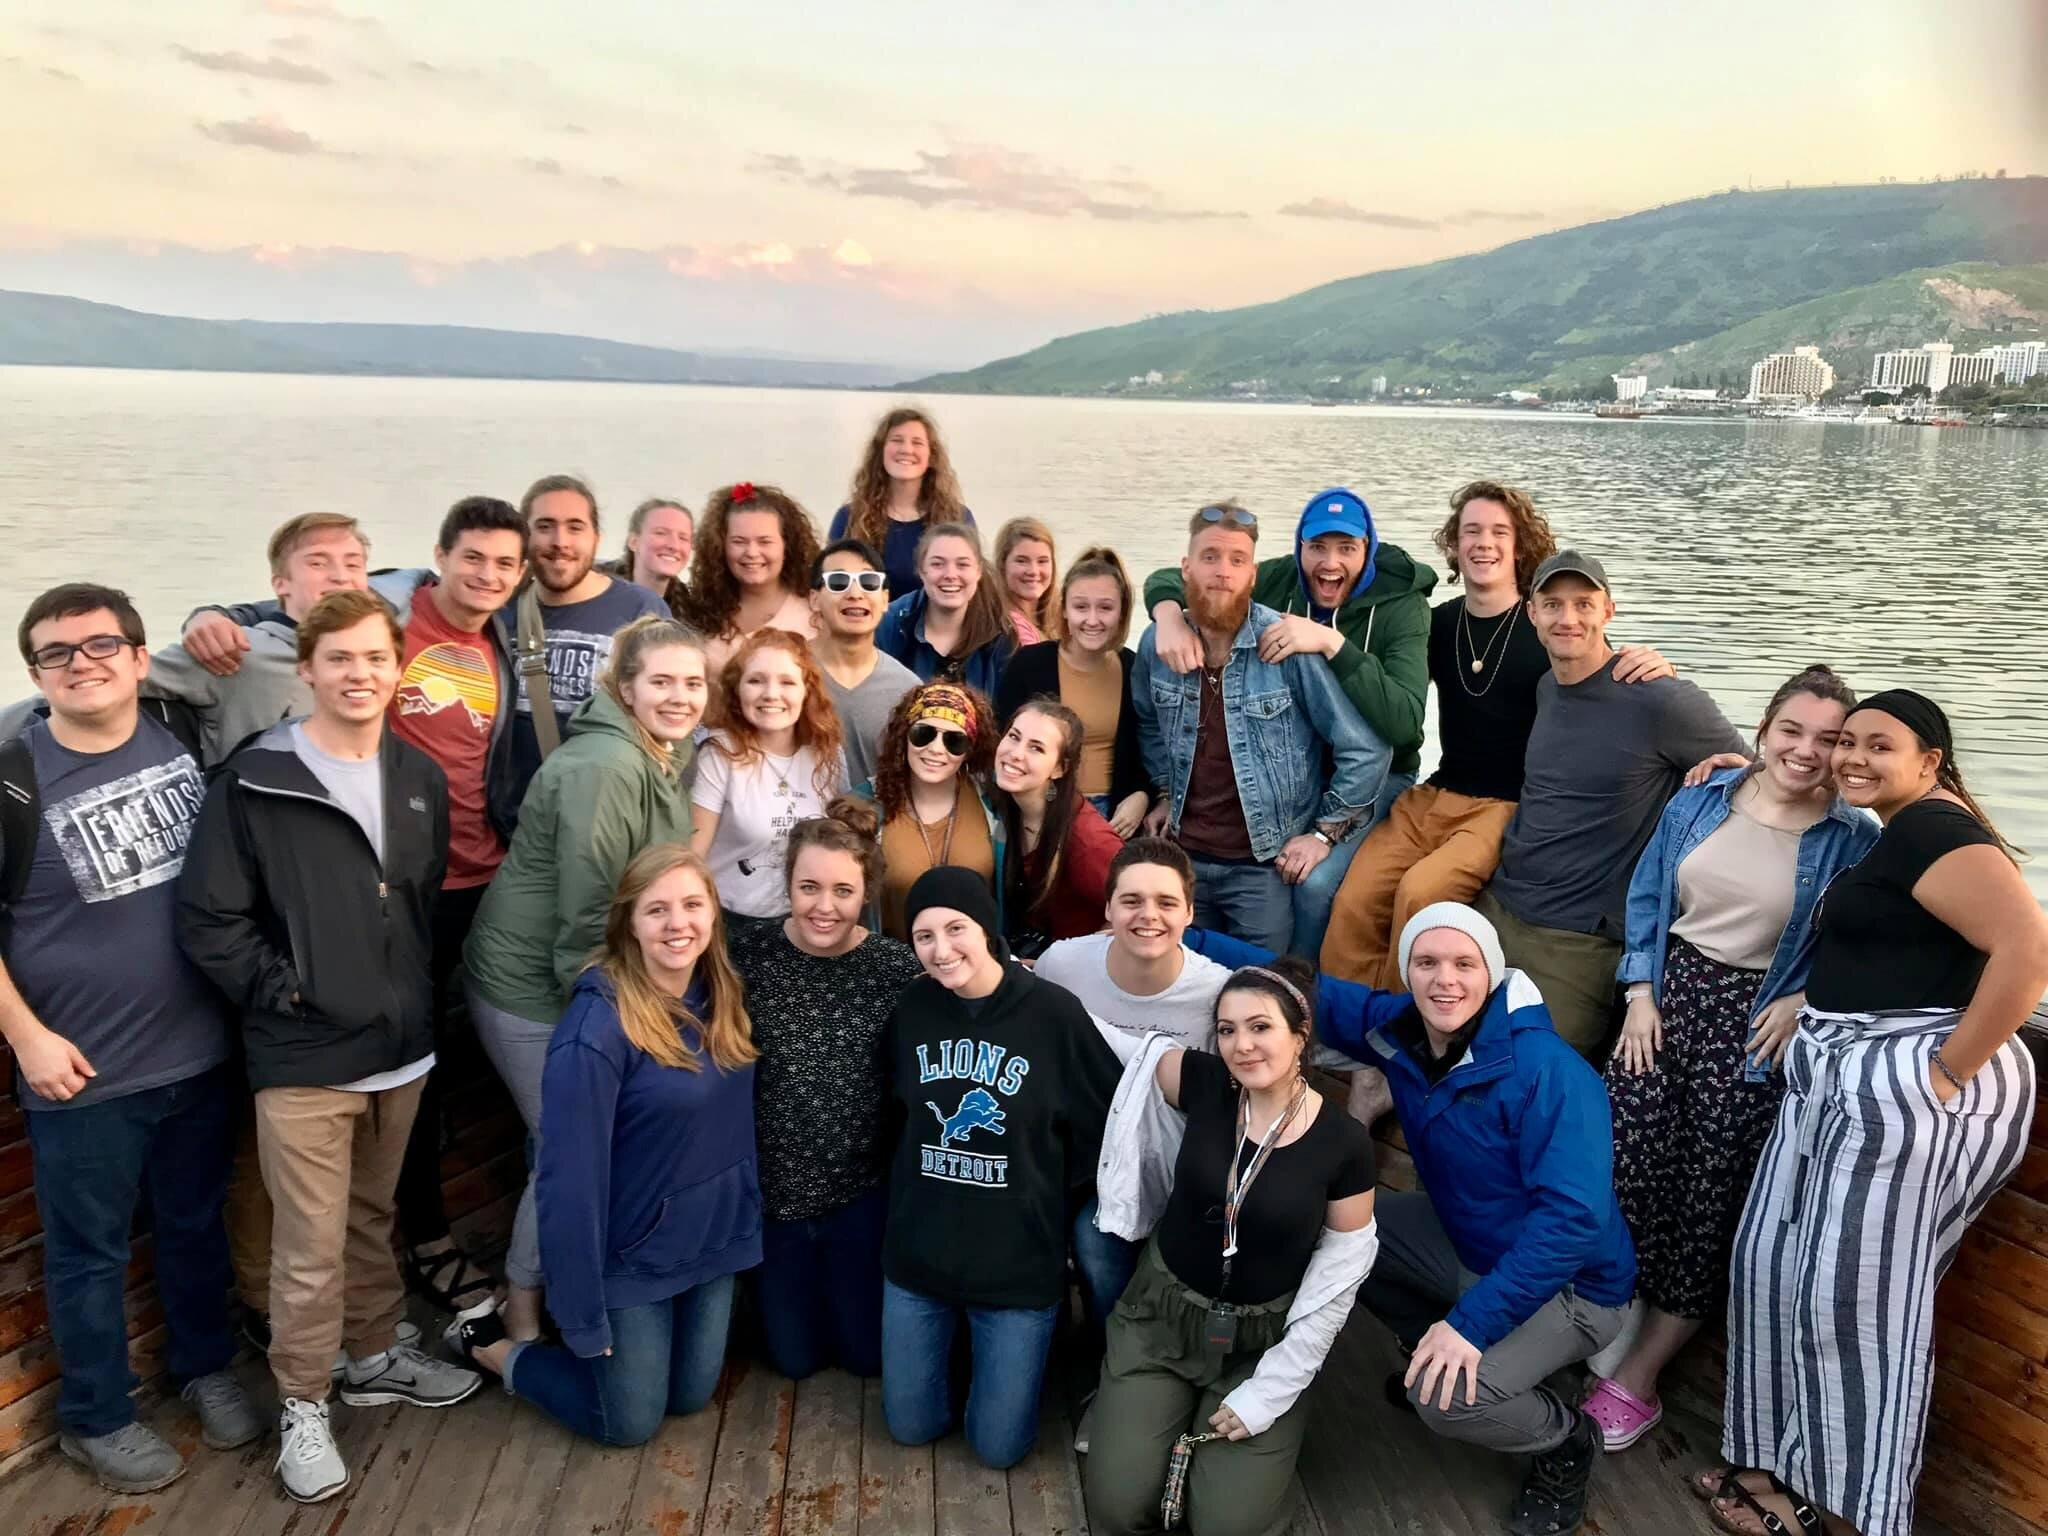 This is Clayton Lancaster with OneLife SWU on the Sea of Galilee in Israel of spring 2019.